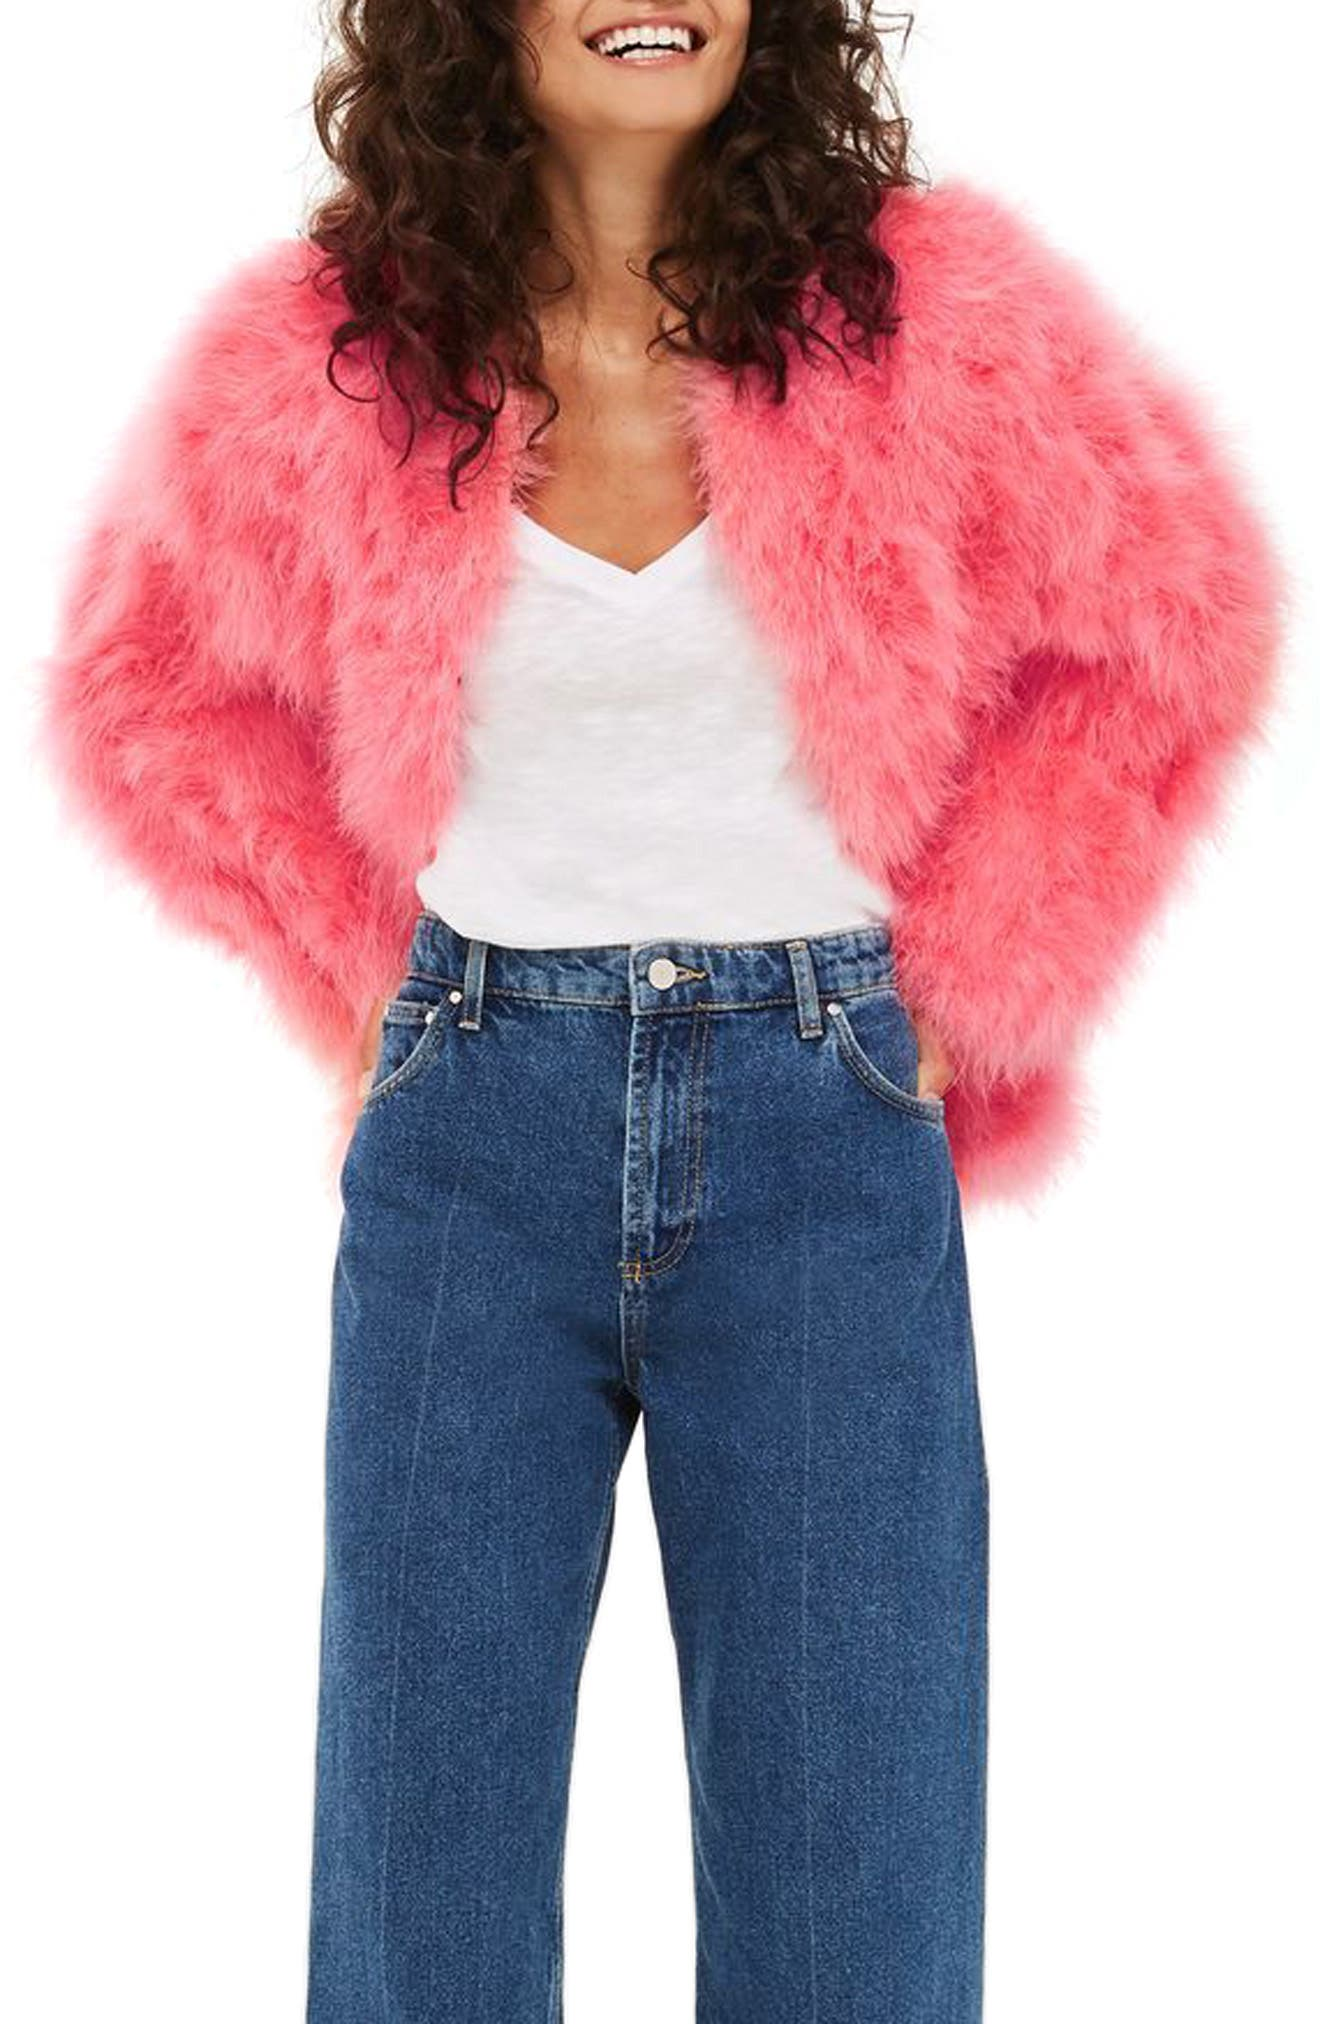 Marabou Feather Jacket,                             Main thumbnail 1, color,                             Pink